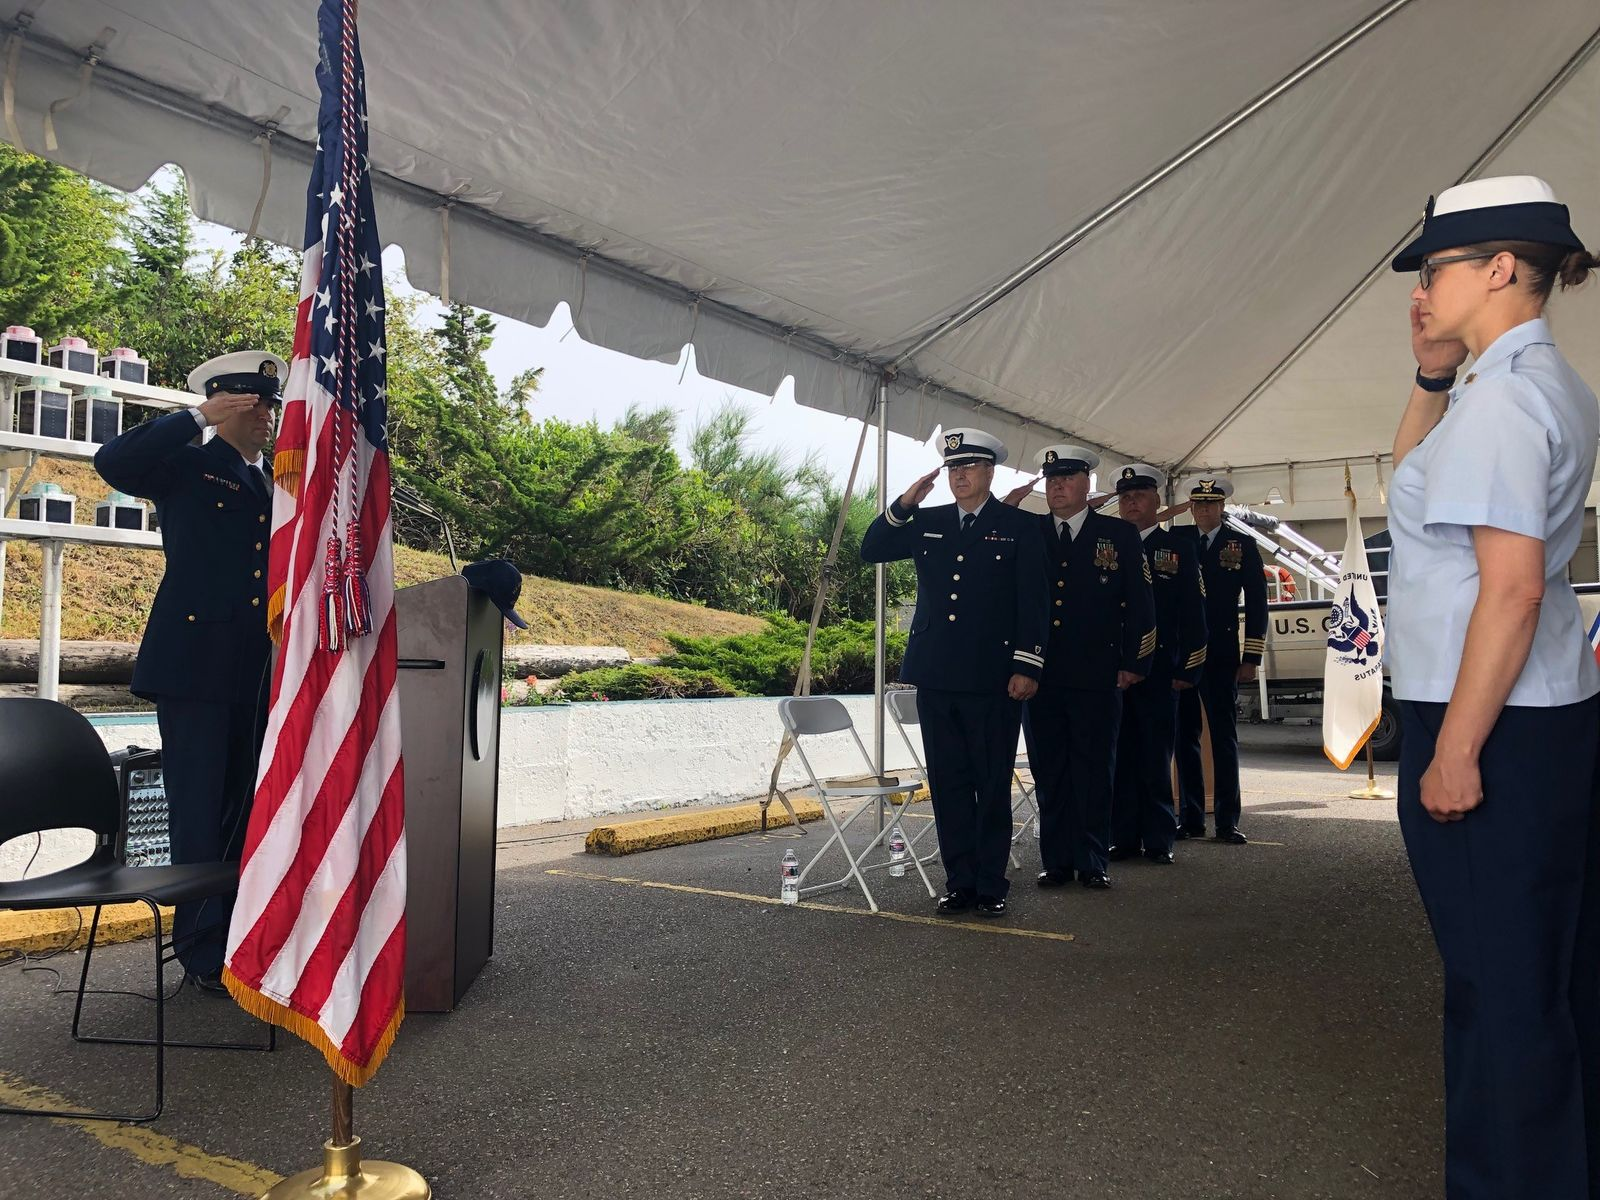 The US Coast Guard celebrated a change of command ceremony in Charleston, July 11, 2019. (SBG)